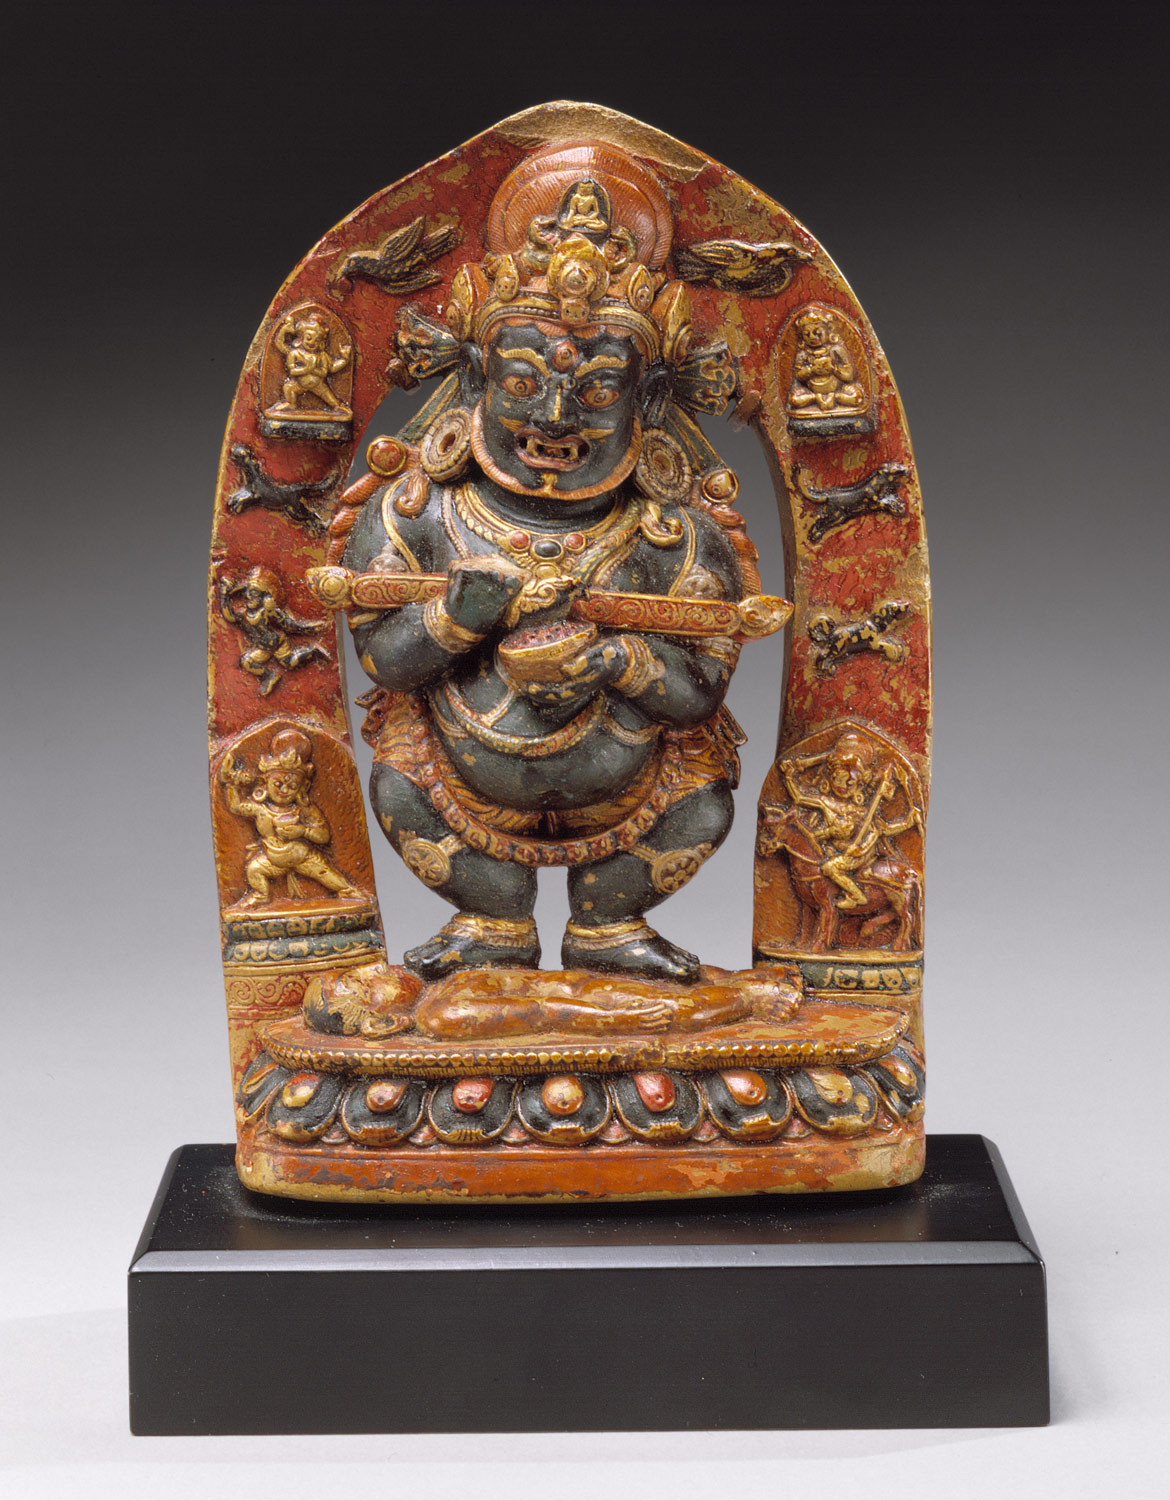 Mahakala Panjaranatha (Protector of the Tent)